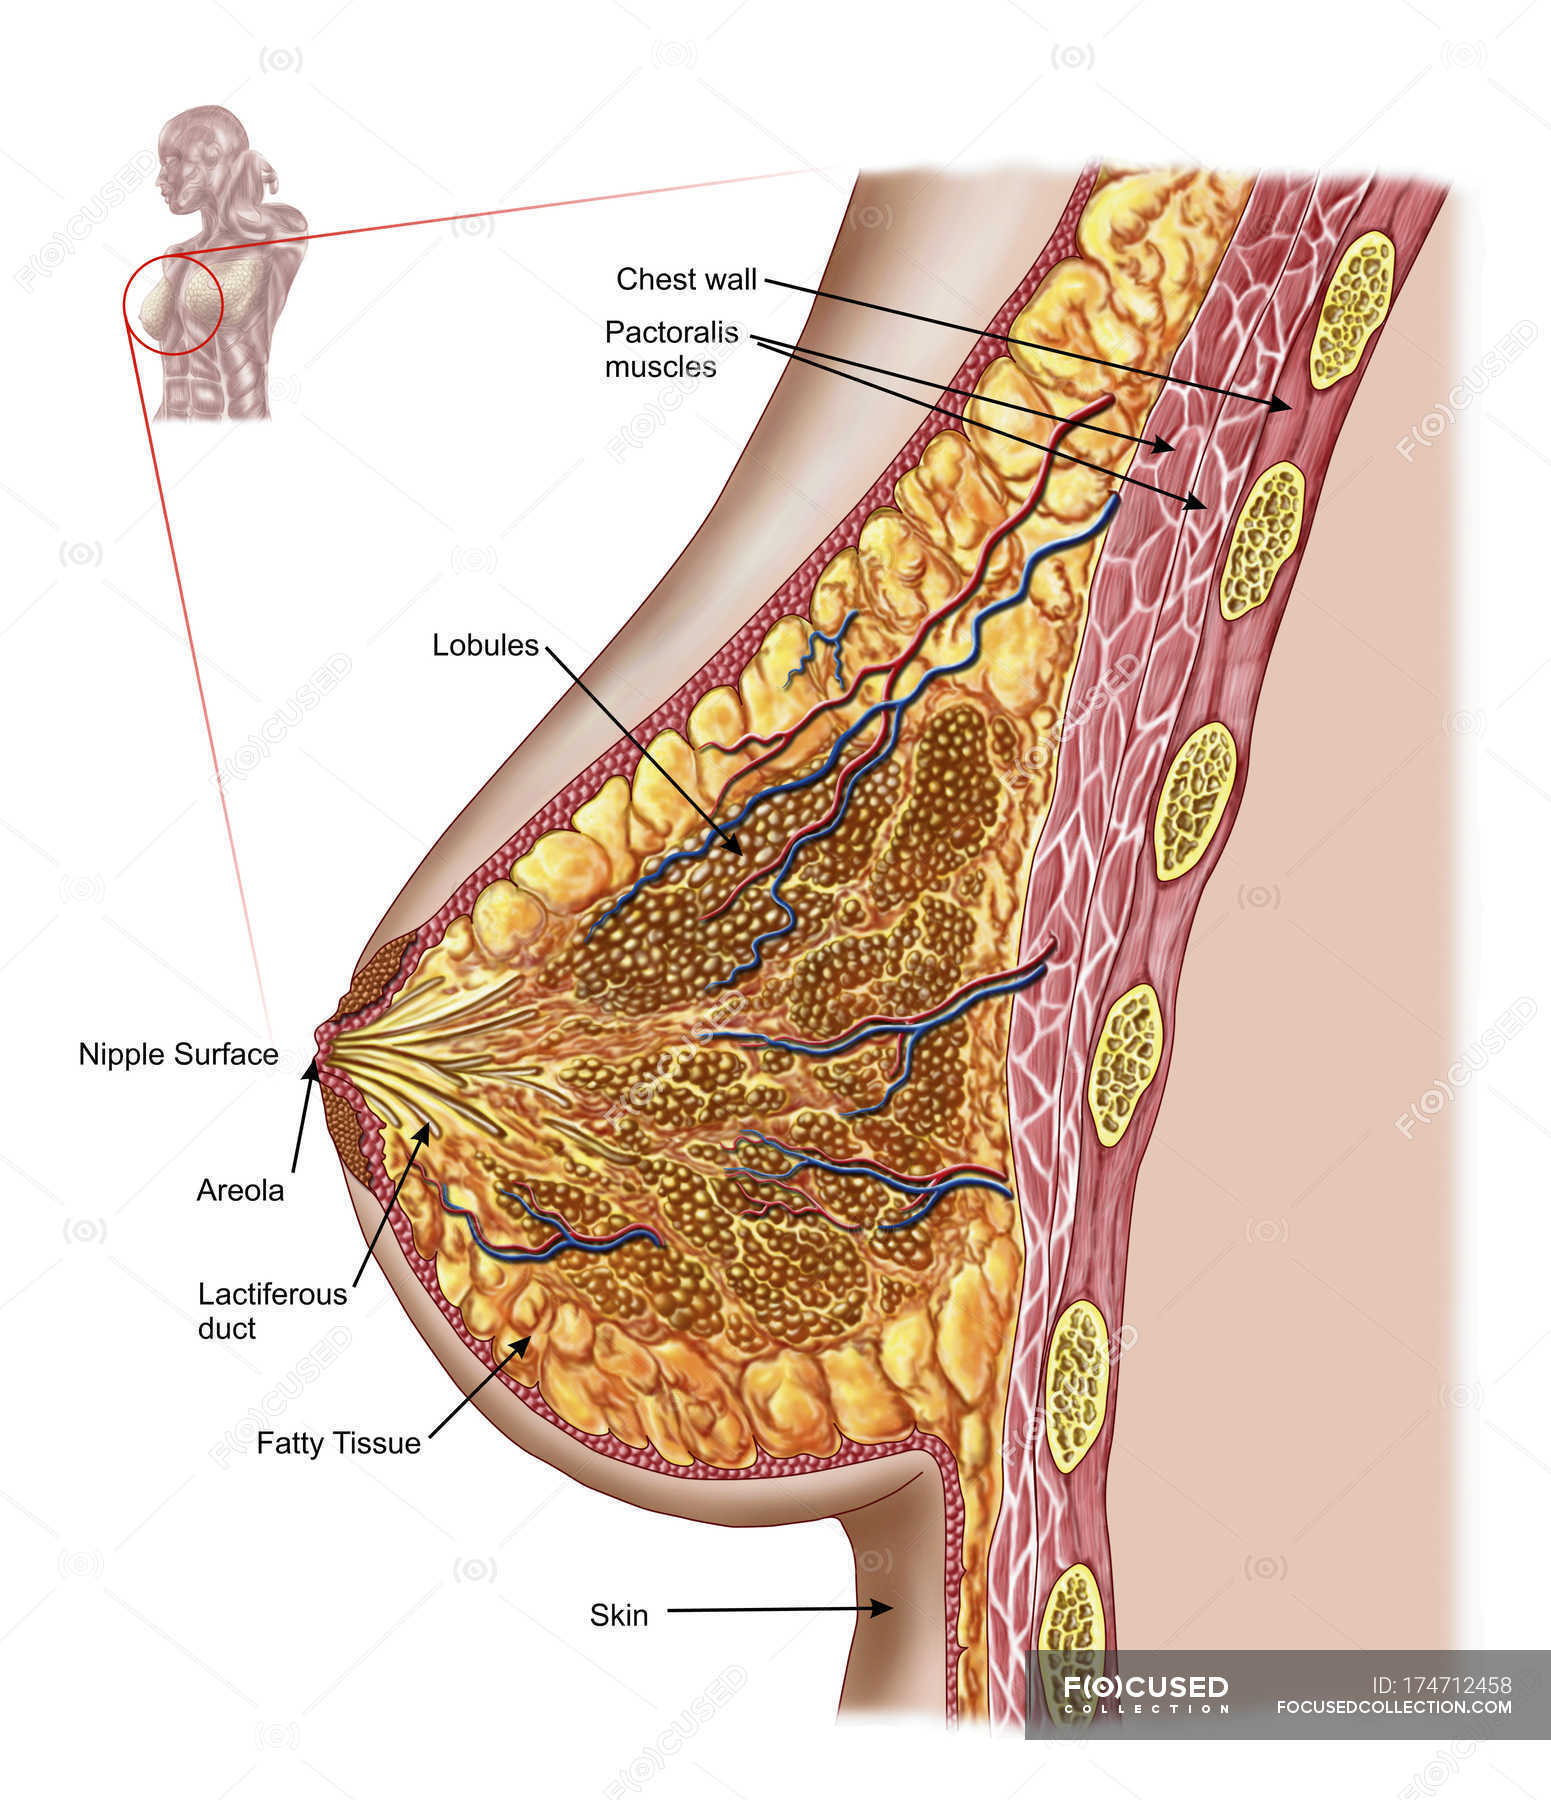 Anatomy of the female breast with labels — Stock Photo | #174712458